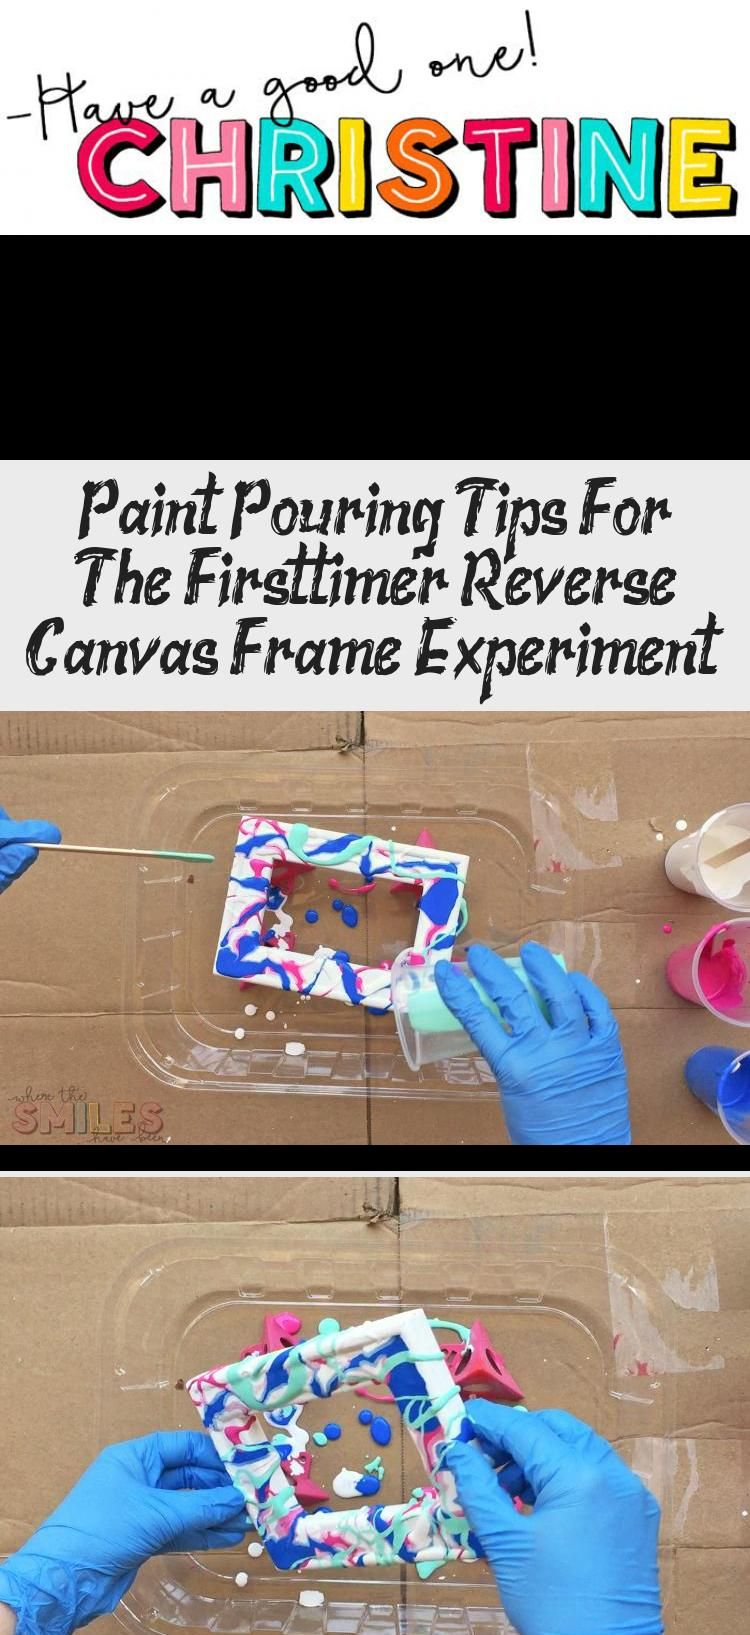 Paint Pouring Tips For The First Timer Reverse Canvas Frame